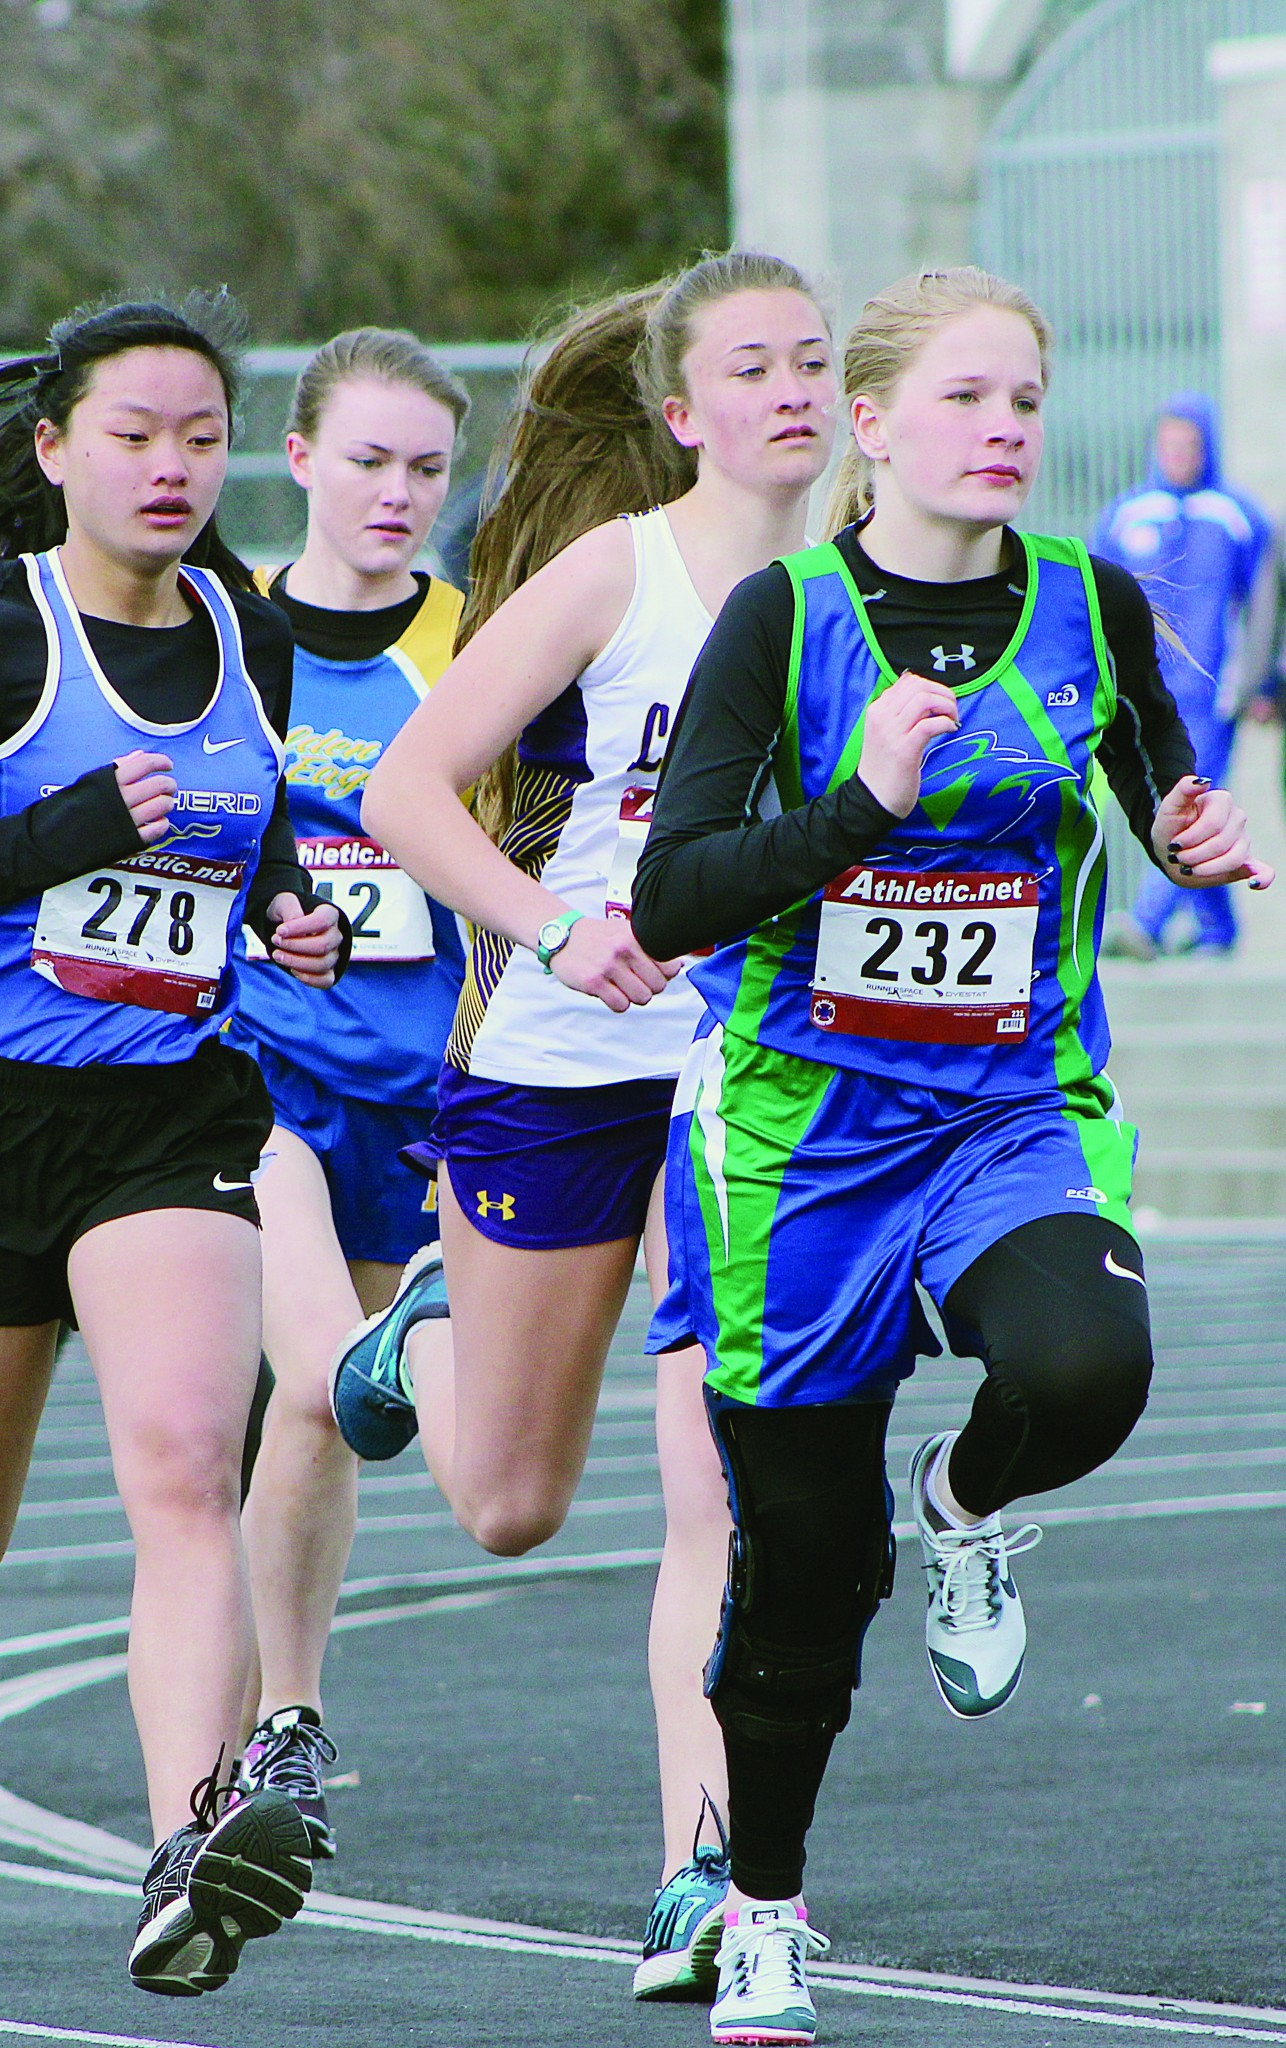 RPR freshman Justice Albers paces her group during the 800-meter race.